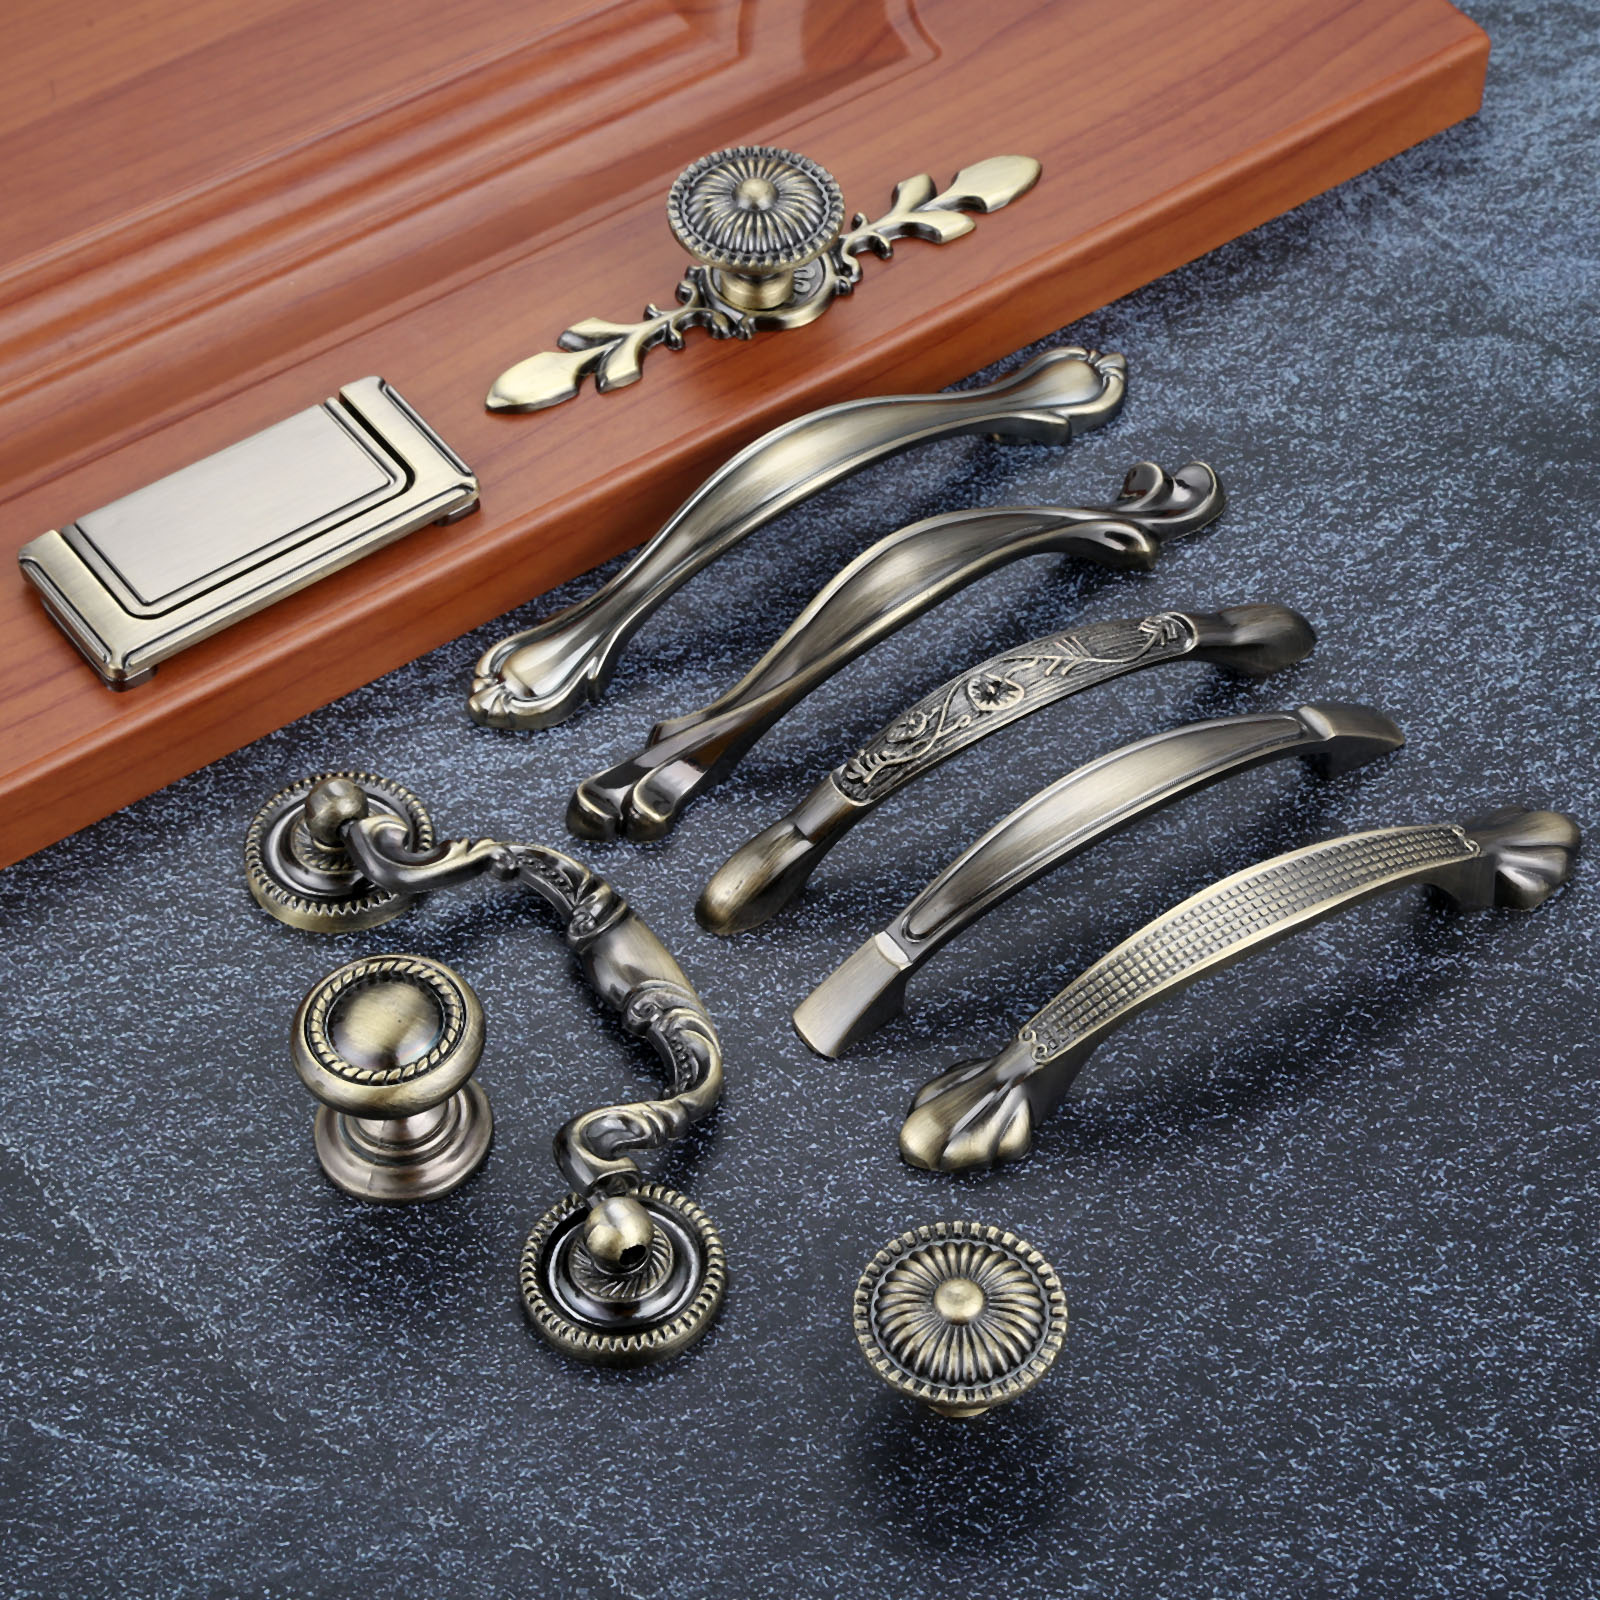 Antique Door Handles Knobs Metal Drawer Pulls Kitchen Cabinet For Furniture Hardware